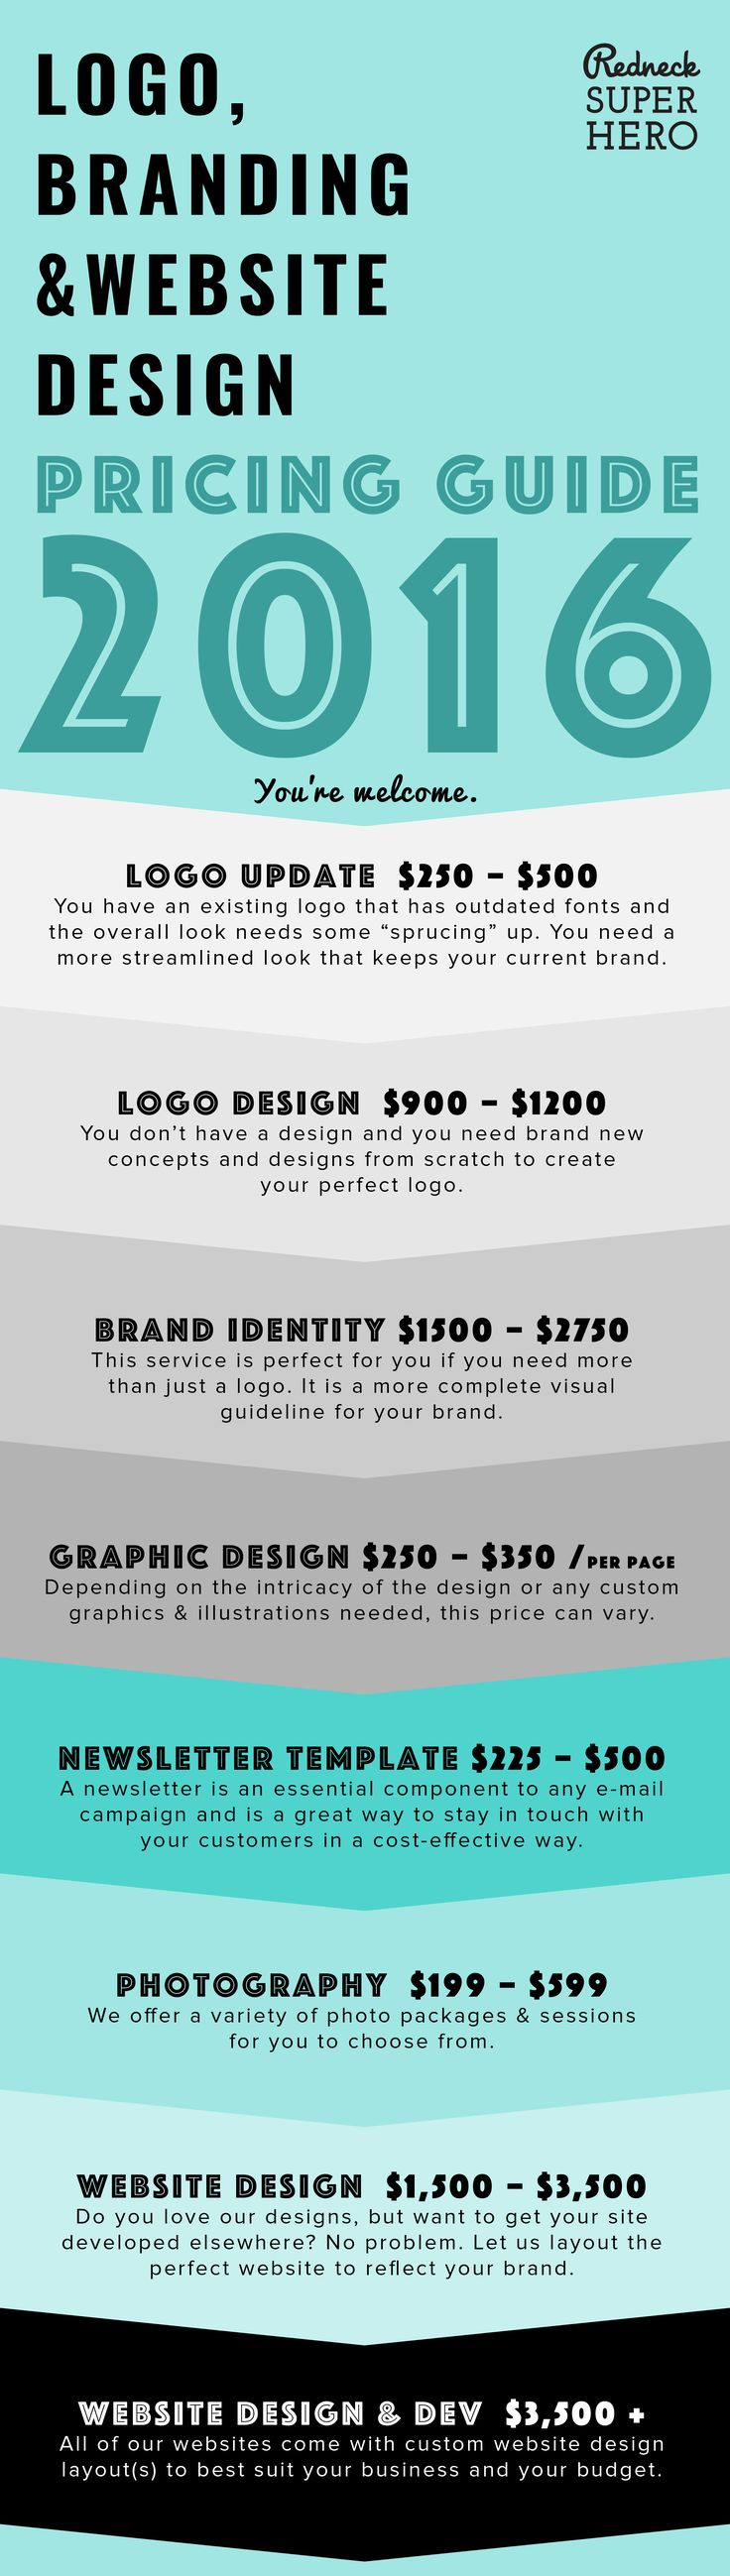 pricing - infographic